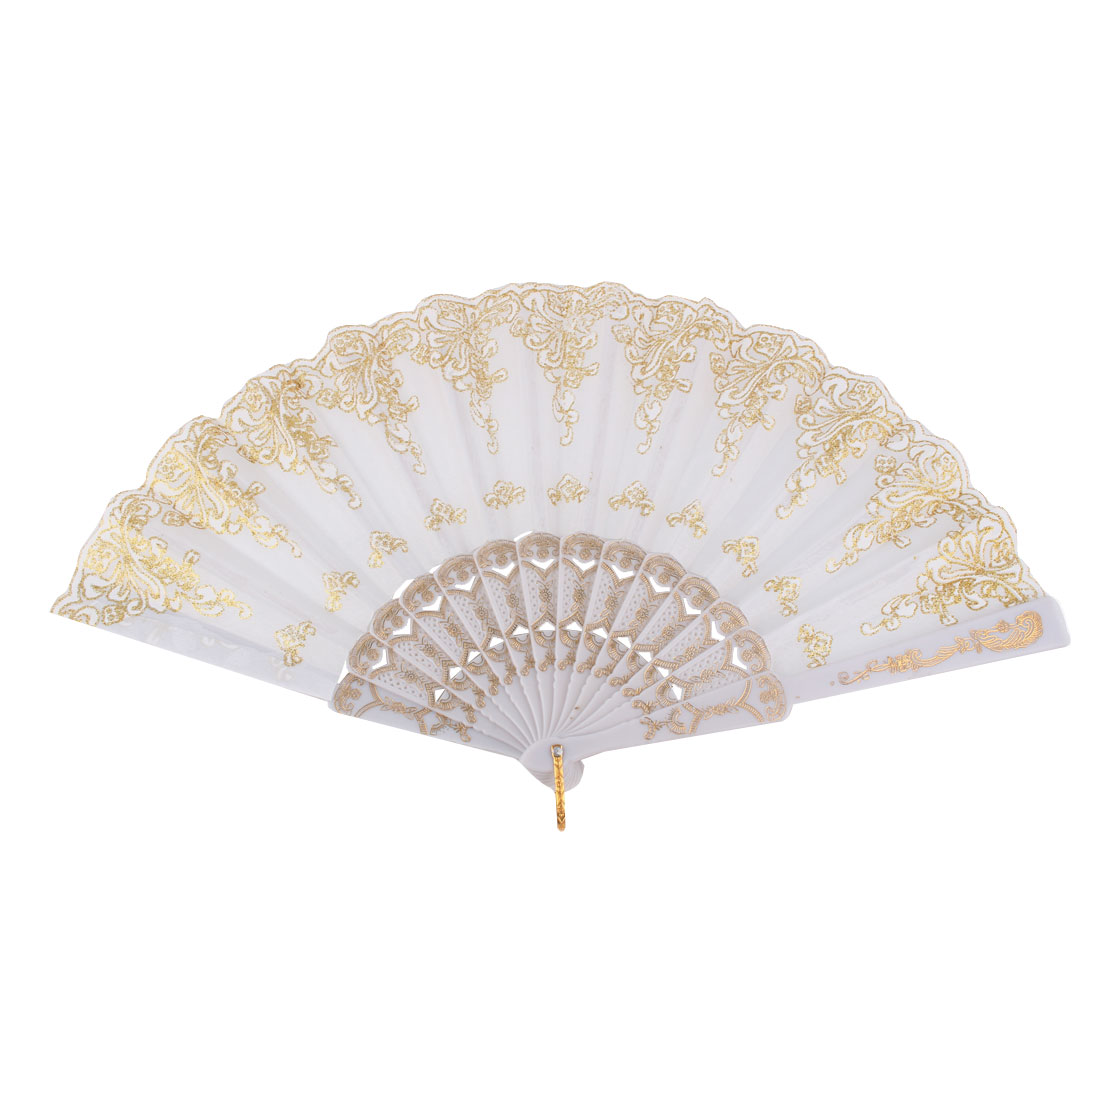 Dancing Wedding Chinese Style Leaf Pattern Folding Hand Fan Gold Tone White